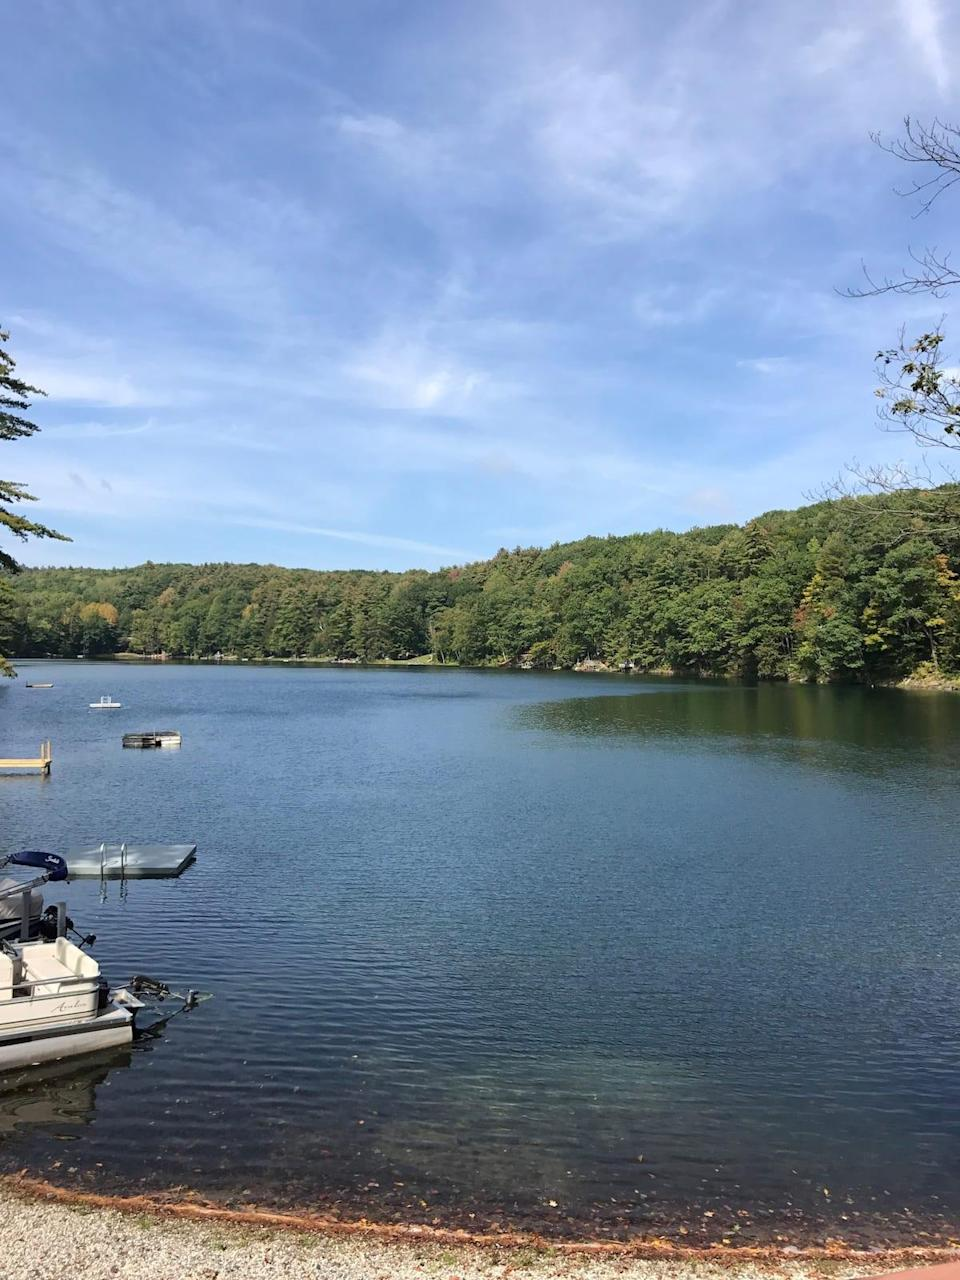 """<h2>Emerald Lake, New York</h2><br><strong>Location: </strong>Whitehall, New York<br><strong>Sleeps: </strong>8<br><strong>Price Per Night: </strong><a href=""""http://airbnb.pvxt.net/2rrGbG"""" rel=""""nofollow noopener"""" target=""""_blank"""" data-ylk=""""slk:$275"""" class=""""link rapid-noclick-resp"""">$275</a><br><br>""""Beautiful two-bedroom and loft bedroom, one-and-a-half baths, and large open basement. A-frame style home on a small, quiet lake in upstate New York in the town of Hampton/Whitehall (not on Lake George), 5 miles from the Vermont border, 33 miles from Lake George village, with a screened-in porch and a large deck. Grill provided.""""<br><br><h3>Book <a href=""""http://airbnb.pvxt.net/2rrGbG"""" rel=""""nofollow noopener"""" target=""""_blank"""" data-ylk=""""slk:Lakefront A-Frame style Home"""" class=""""link rapid-noclick-resp"""">Lakefront A-Frame style Home</a></h3>"""